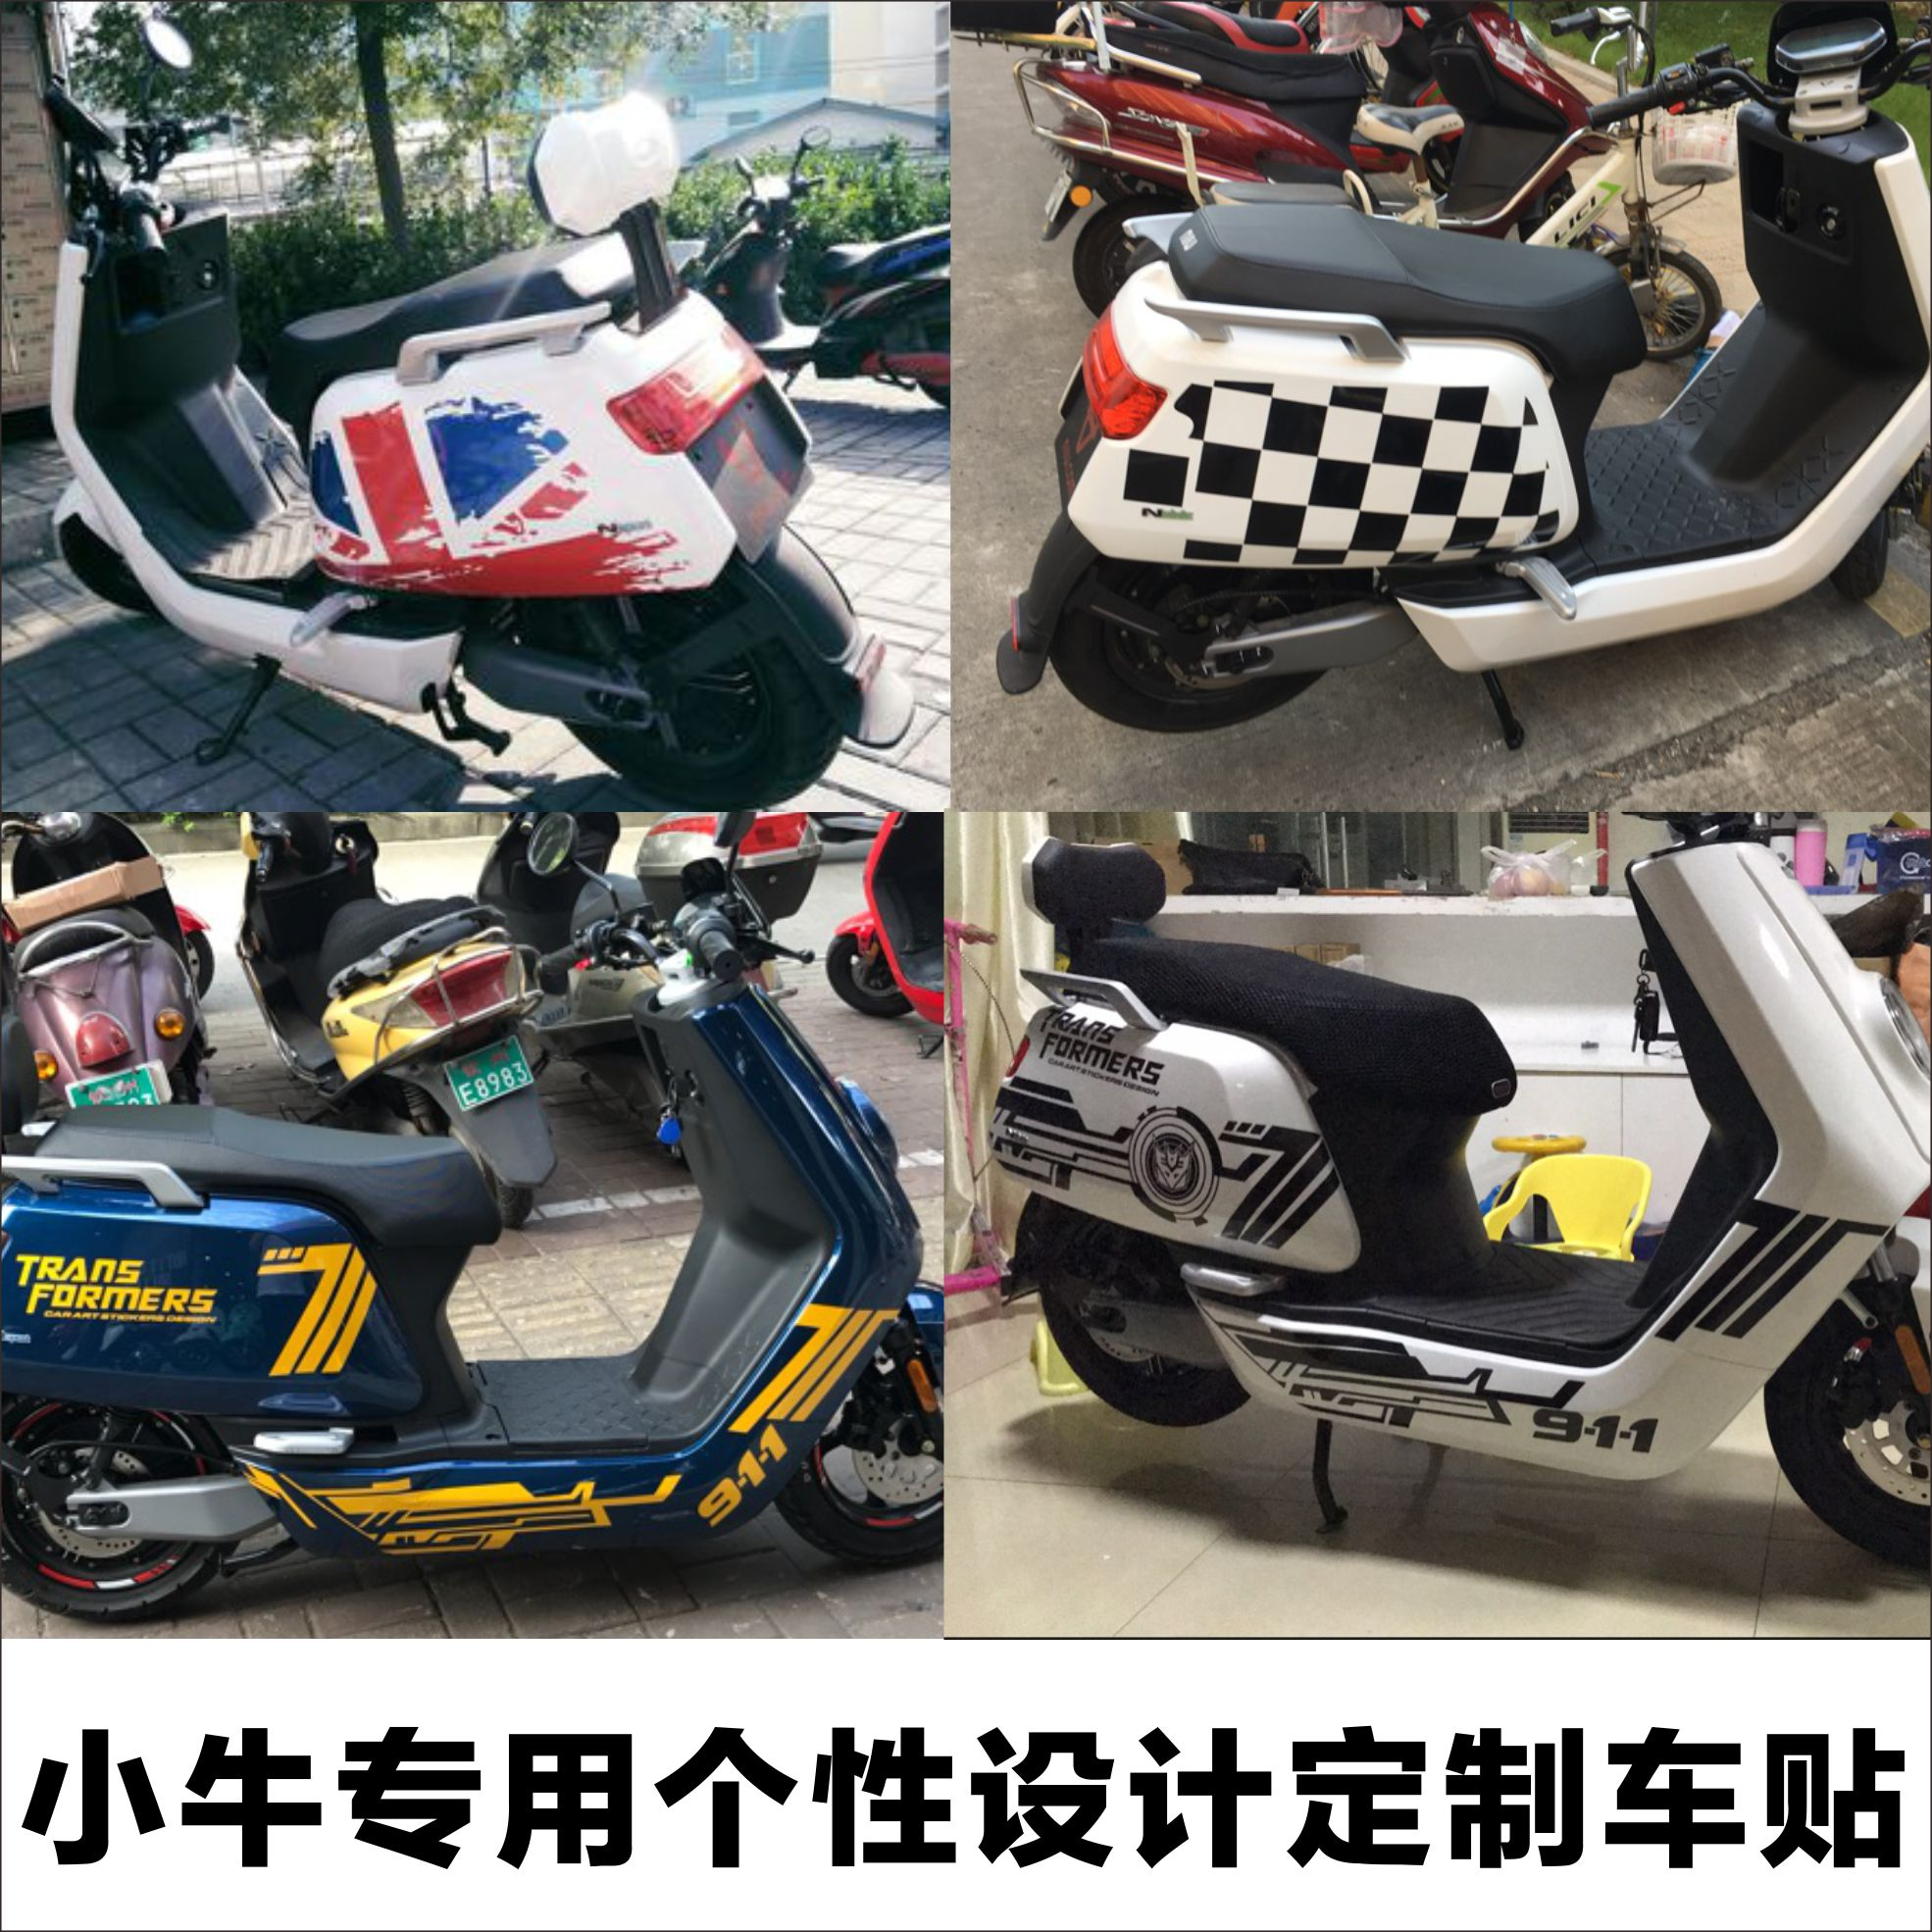 Maverick electric car n1s sticker m1 calf car stickers scooter waterproof motorcycle ornament sticker